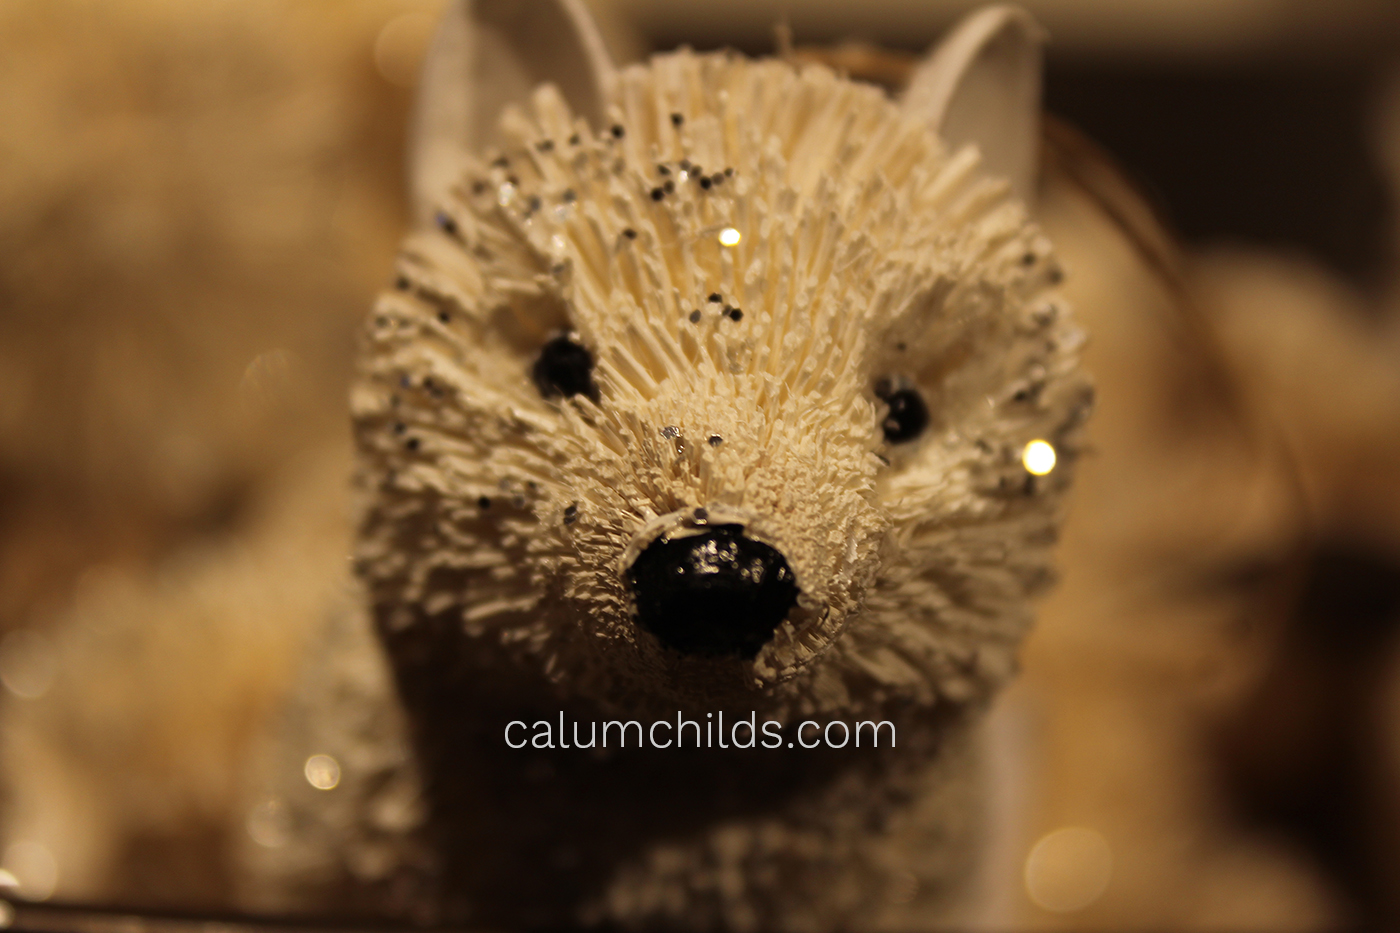 A decoration that looks like a dog seems to stares directly at the camera